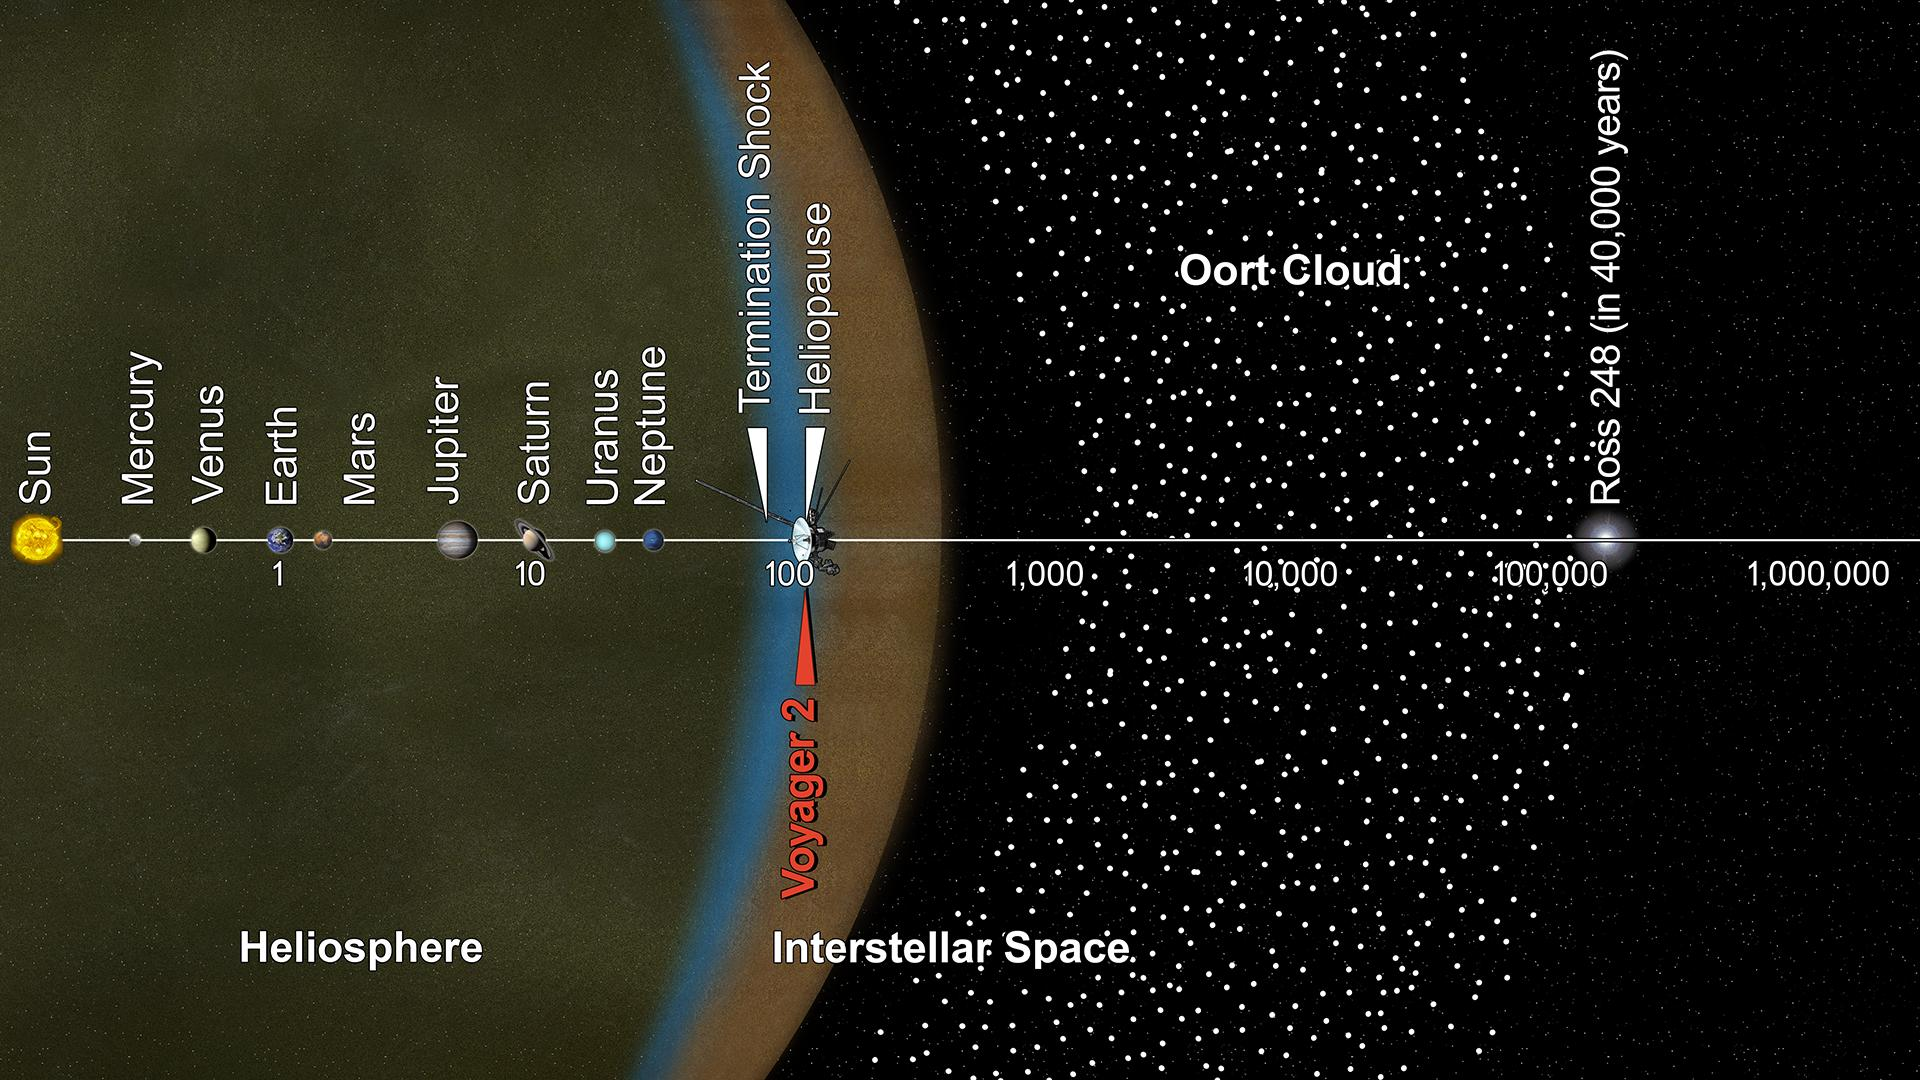 Space Images Voyager 2 and the Scale of the Solar System Artist 1920x1080